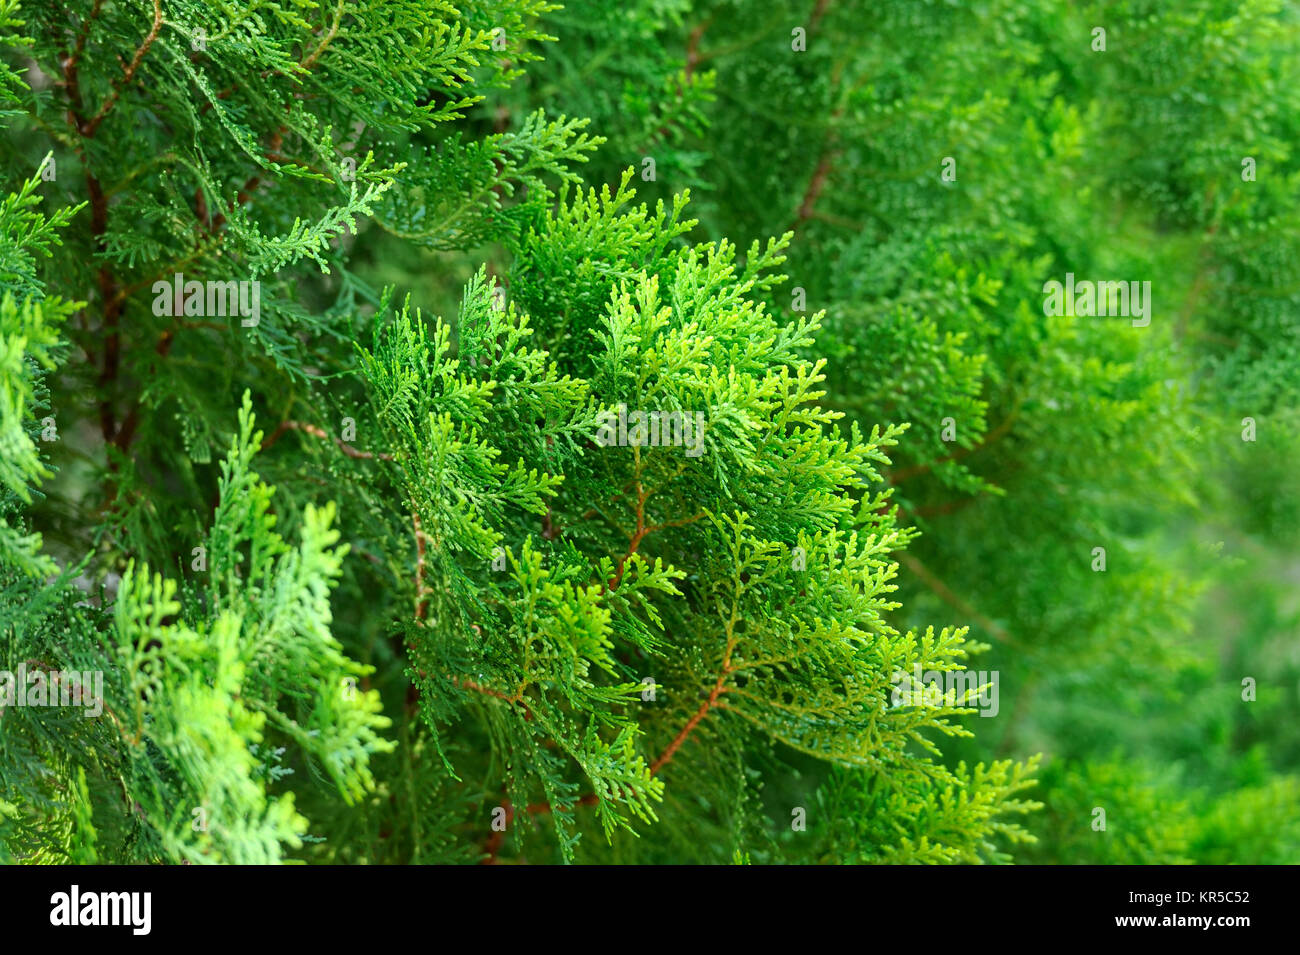 Green Thuja hedge texture close-up view - Stock Image